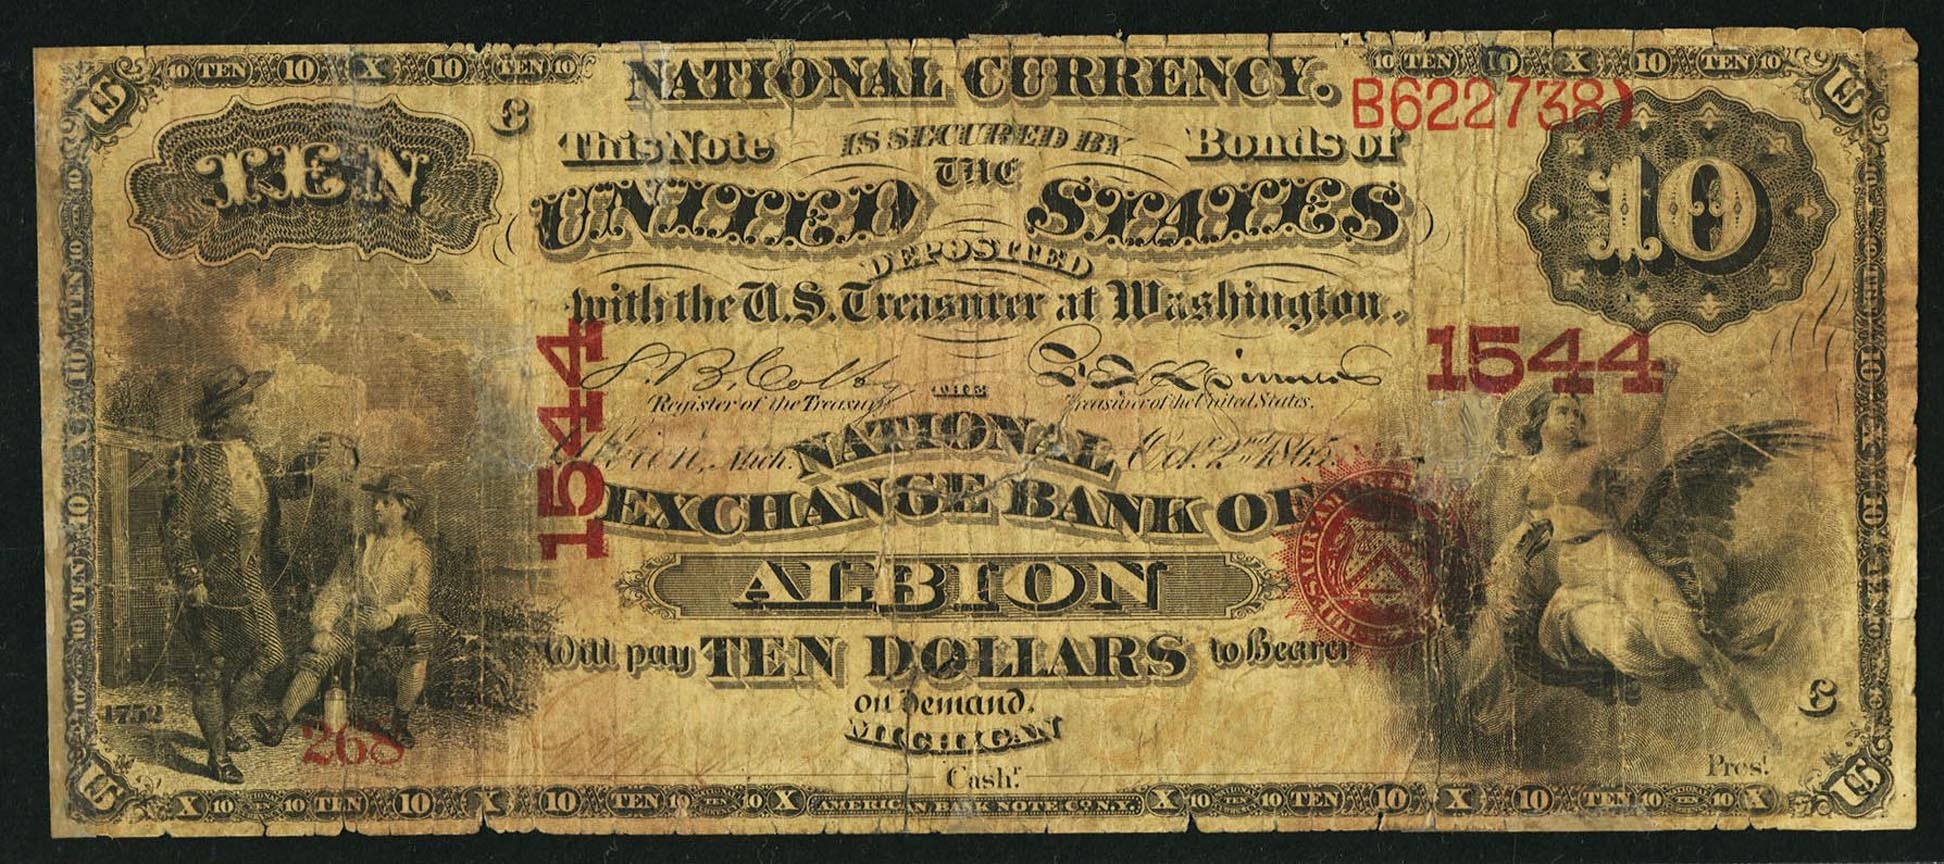 $10 Bill, National Exchange Bank of Albion, Charter Number 1544